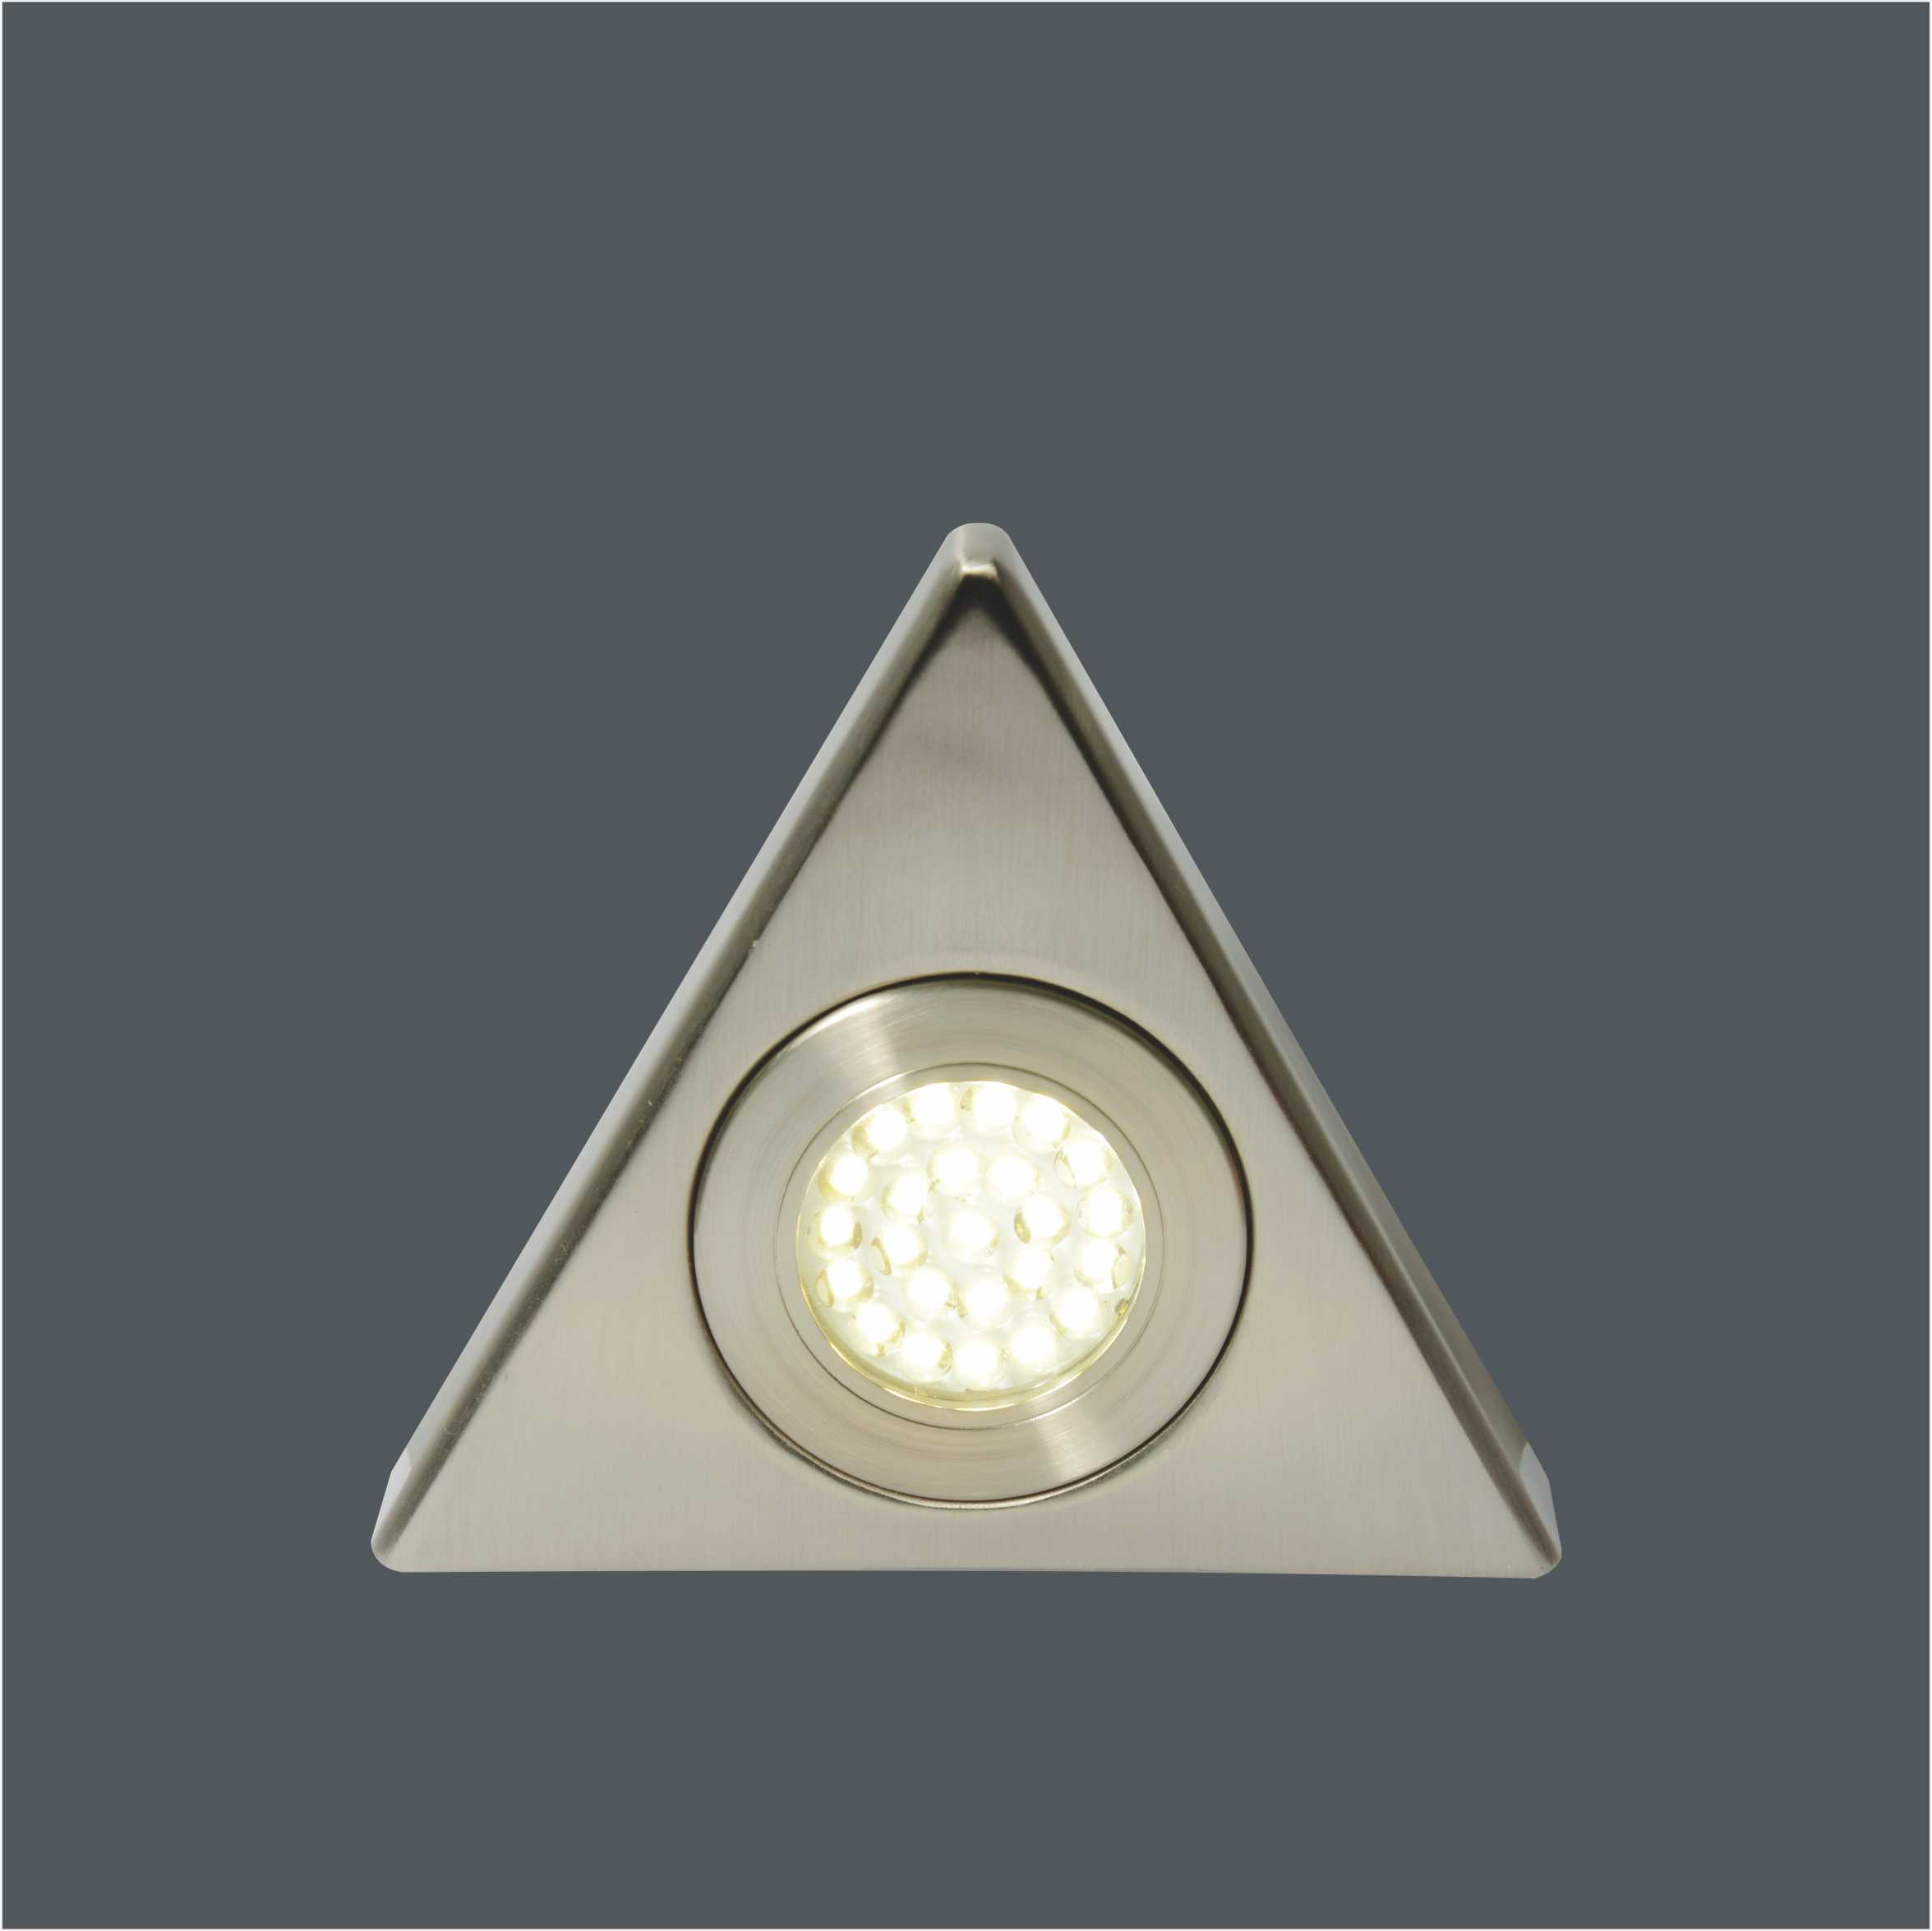 Hot Sale Triangular LED Under Kitchen Cabinet Light 6732